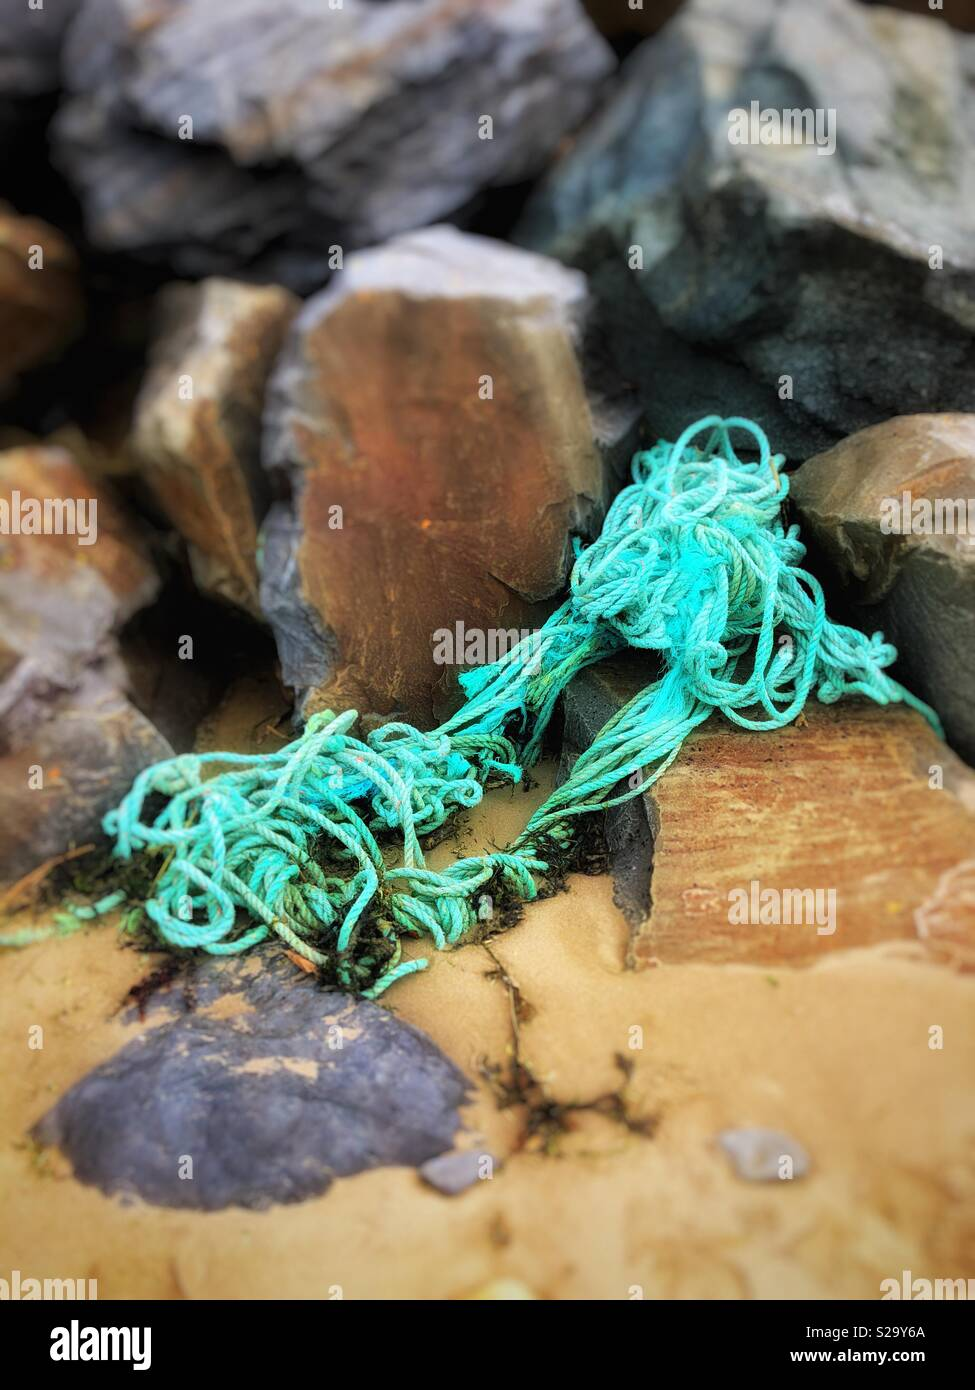 Fishing gear washed up on the high tide line of a Welsh beach. - Stock Image